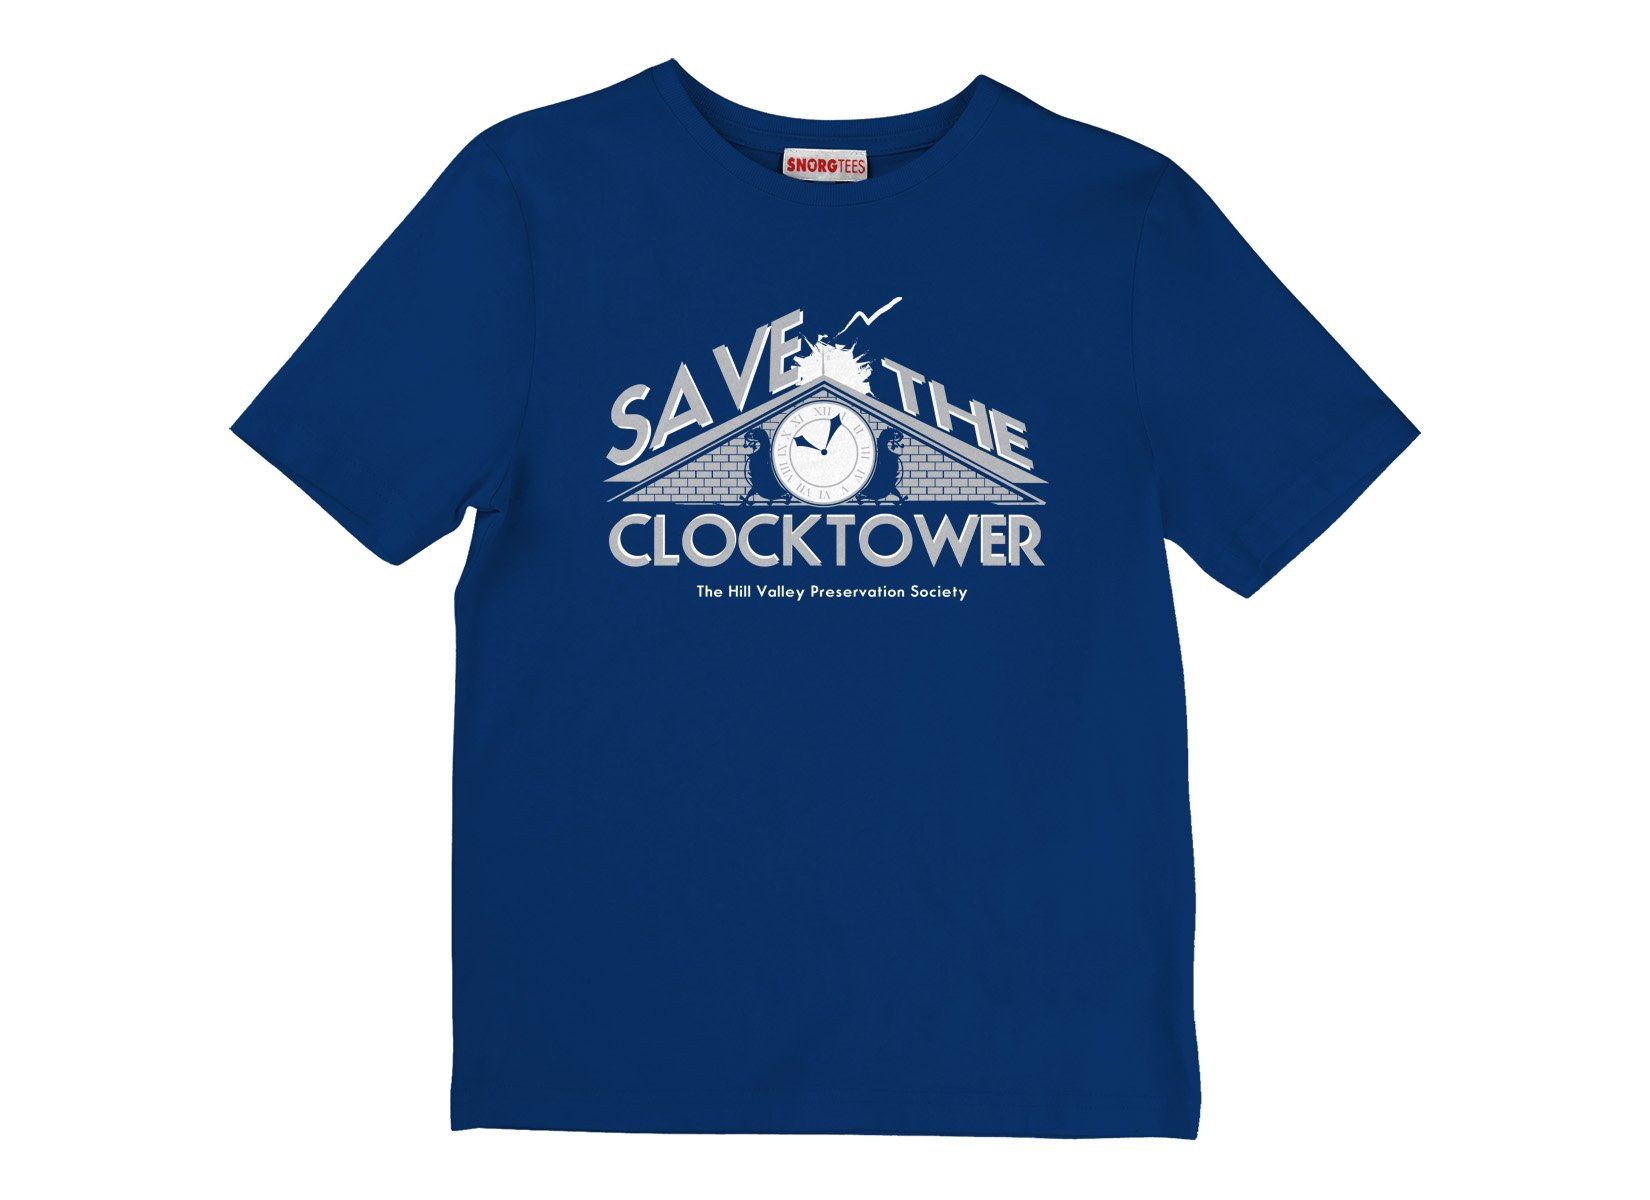 Save The Clocktower on Kids T-Shirt